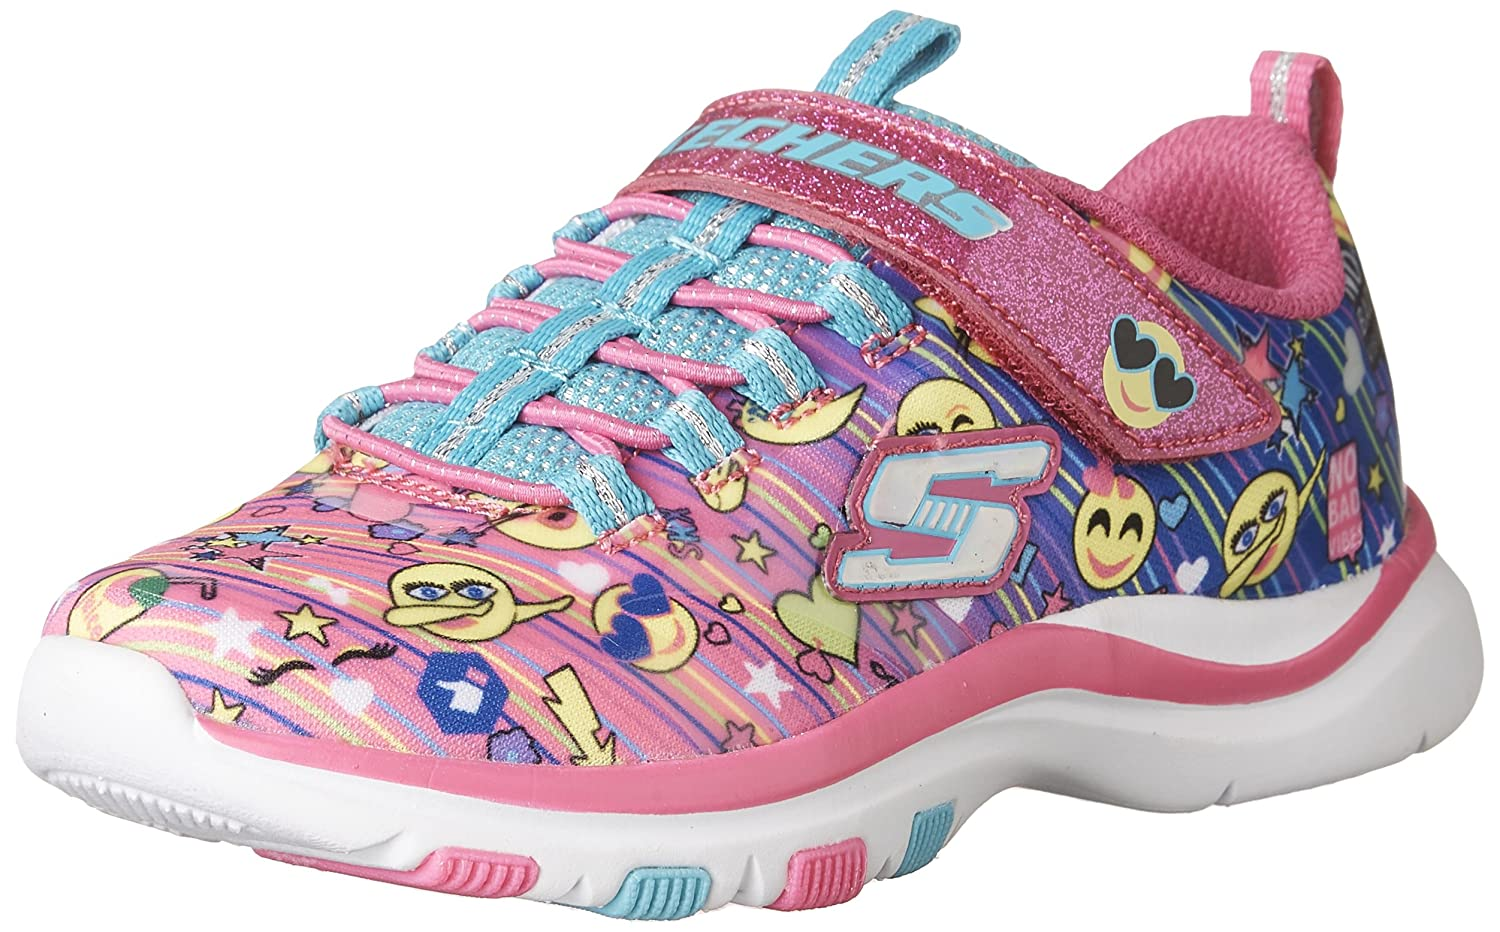 Skechers Girl's Trainer LITE - Happy Dancer Sneakers 81486L